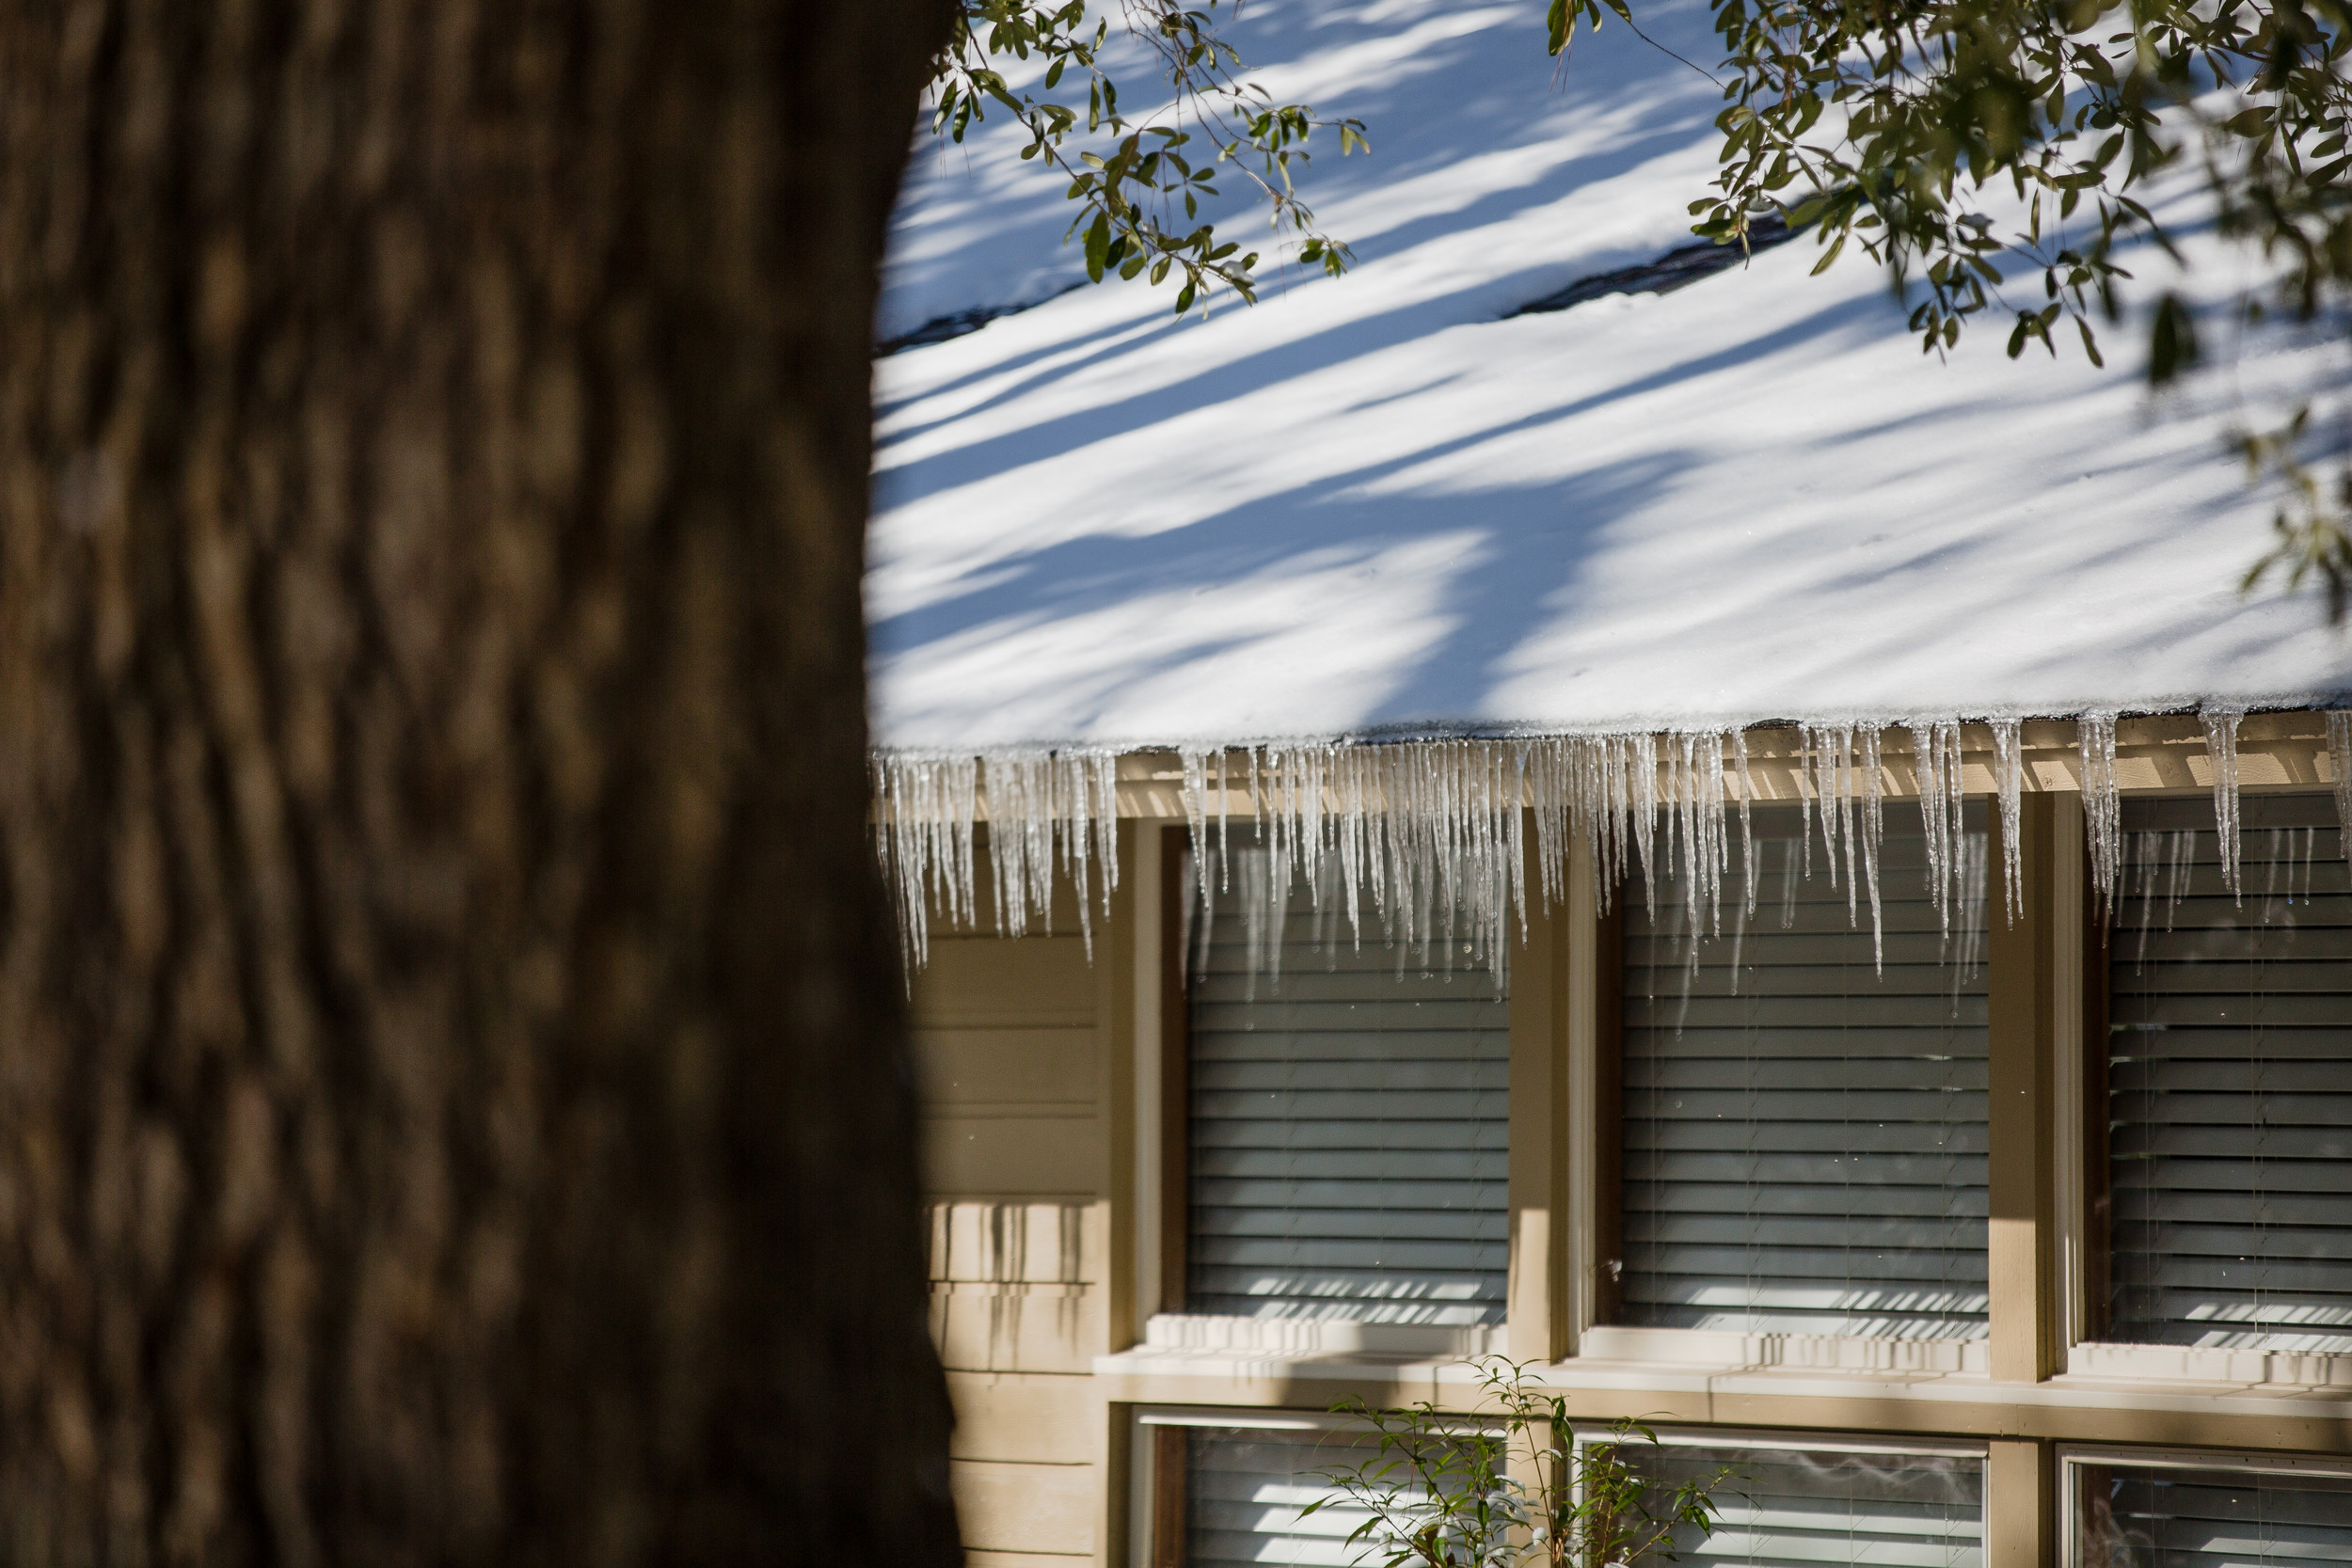 Soon after Christmas lights get taken down in Sumter, real icicles are made on a roof.